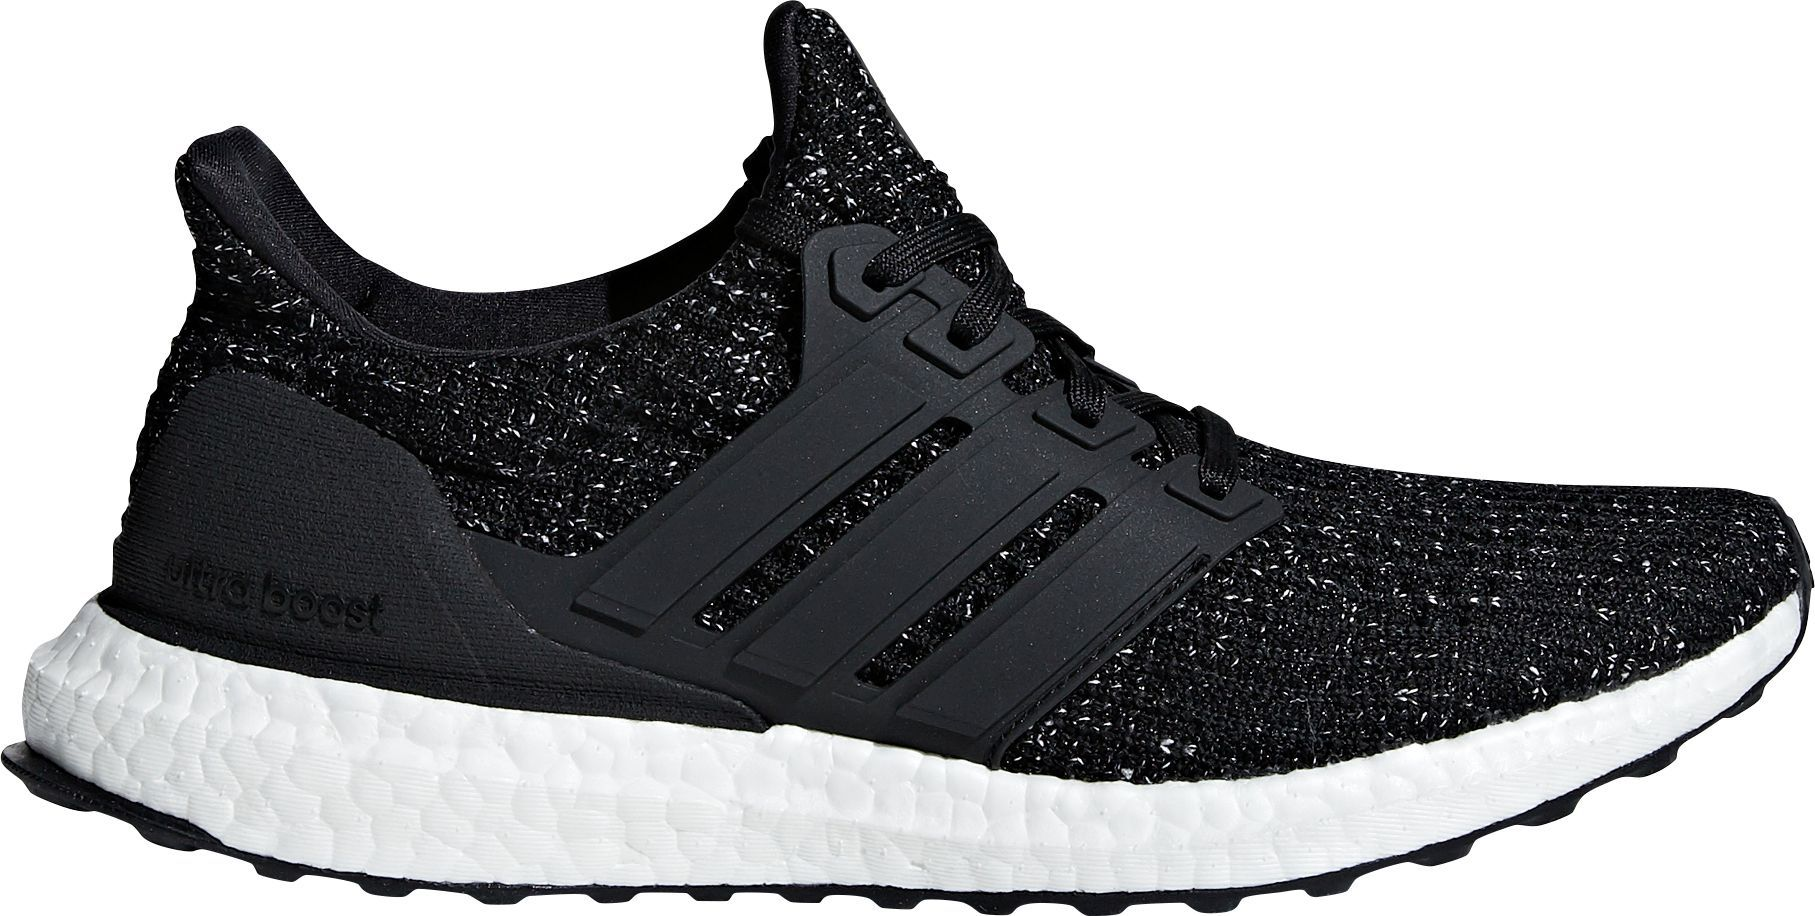 42d80a8f9d040 adidas Women s Ultraboost Running Shoes in 2019